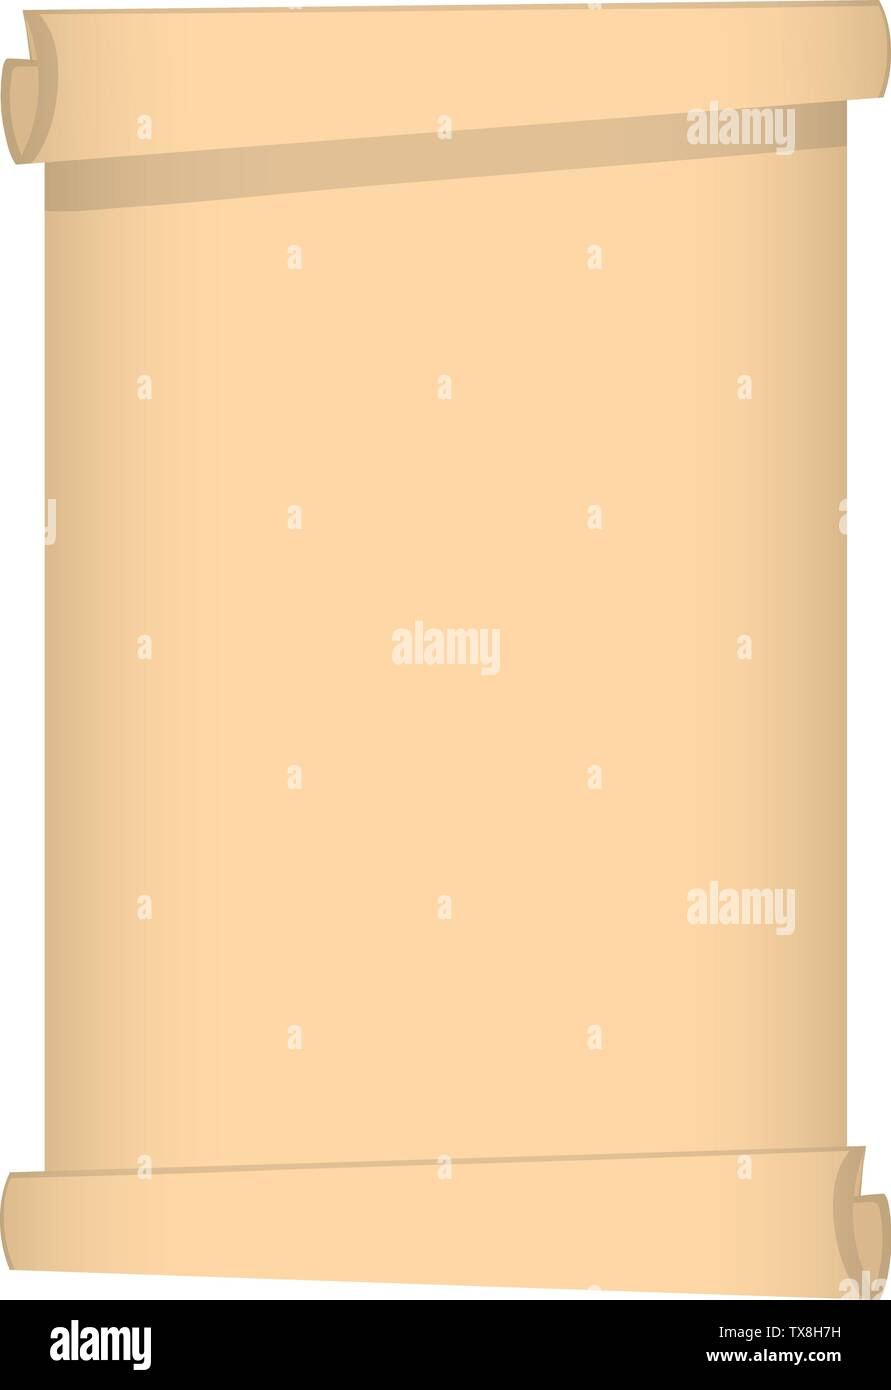 Scroll of Papyrus isolated on white background. Vector illustration for Your Design, Game, Card. - Stock Image